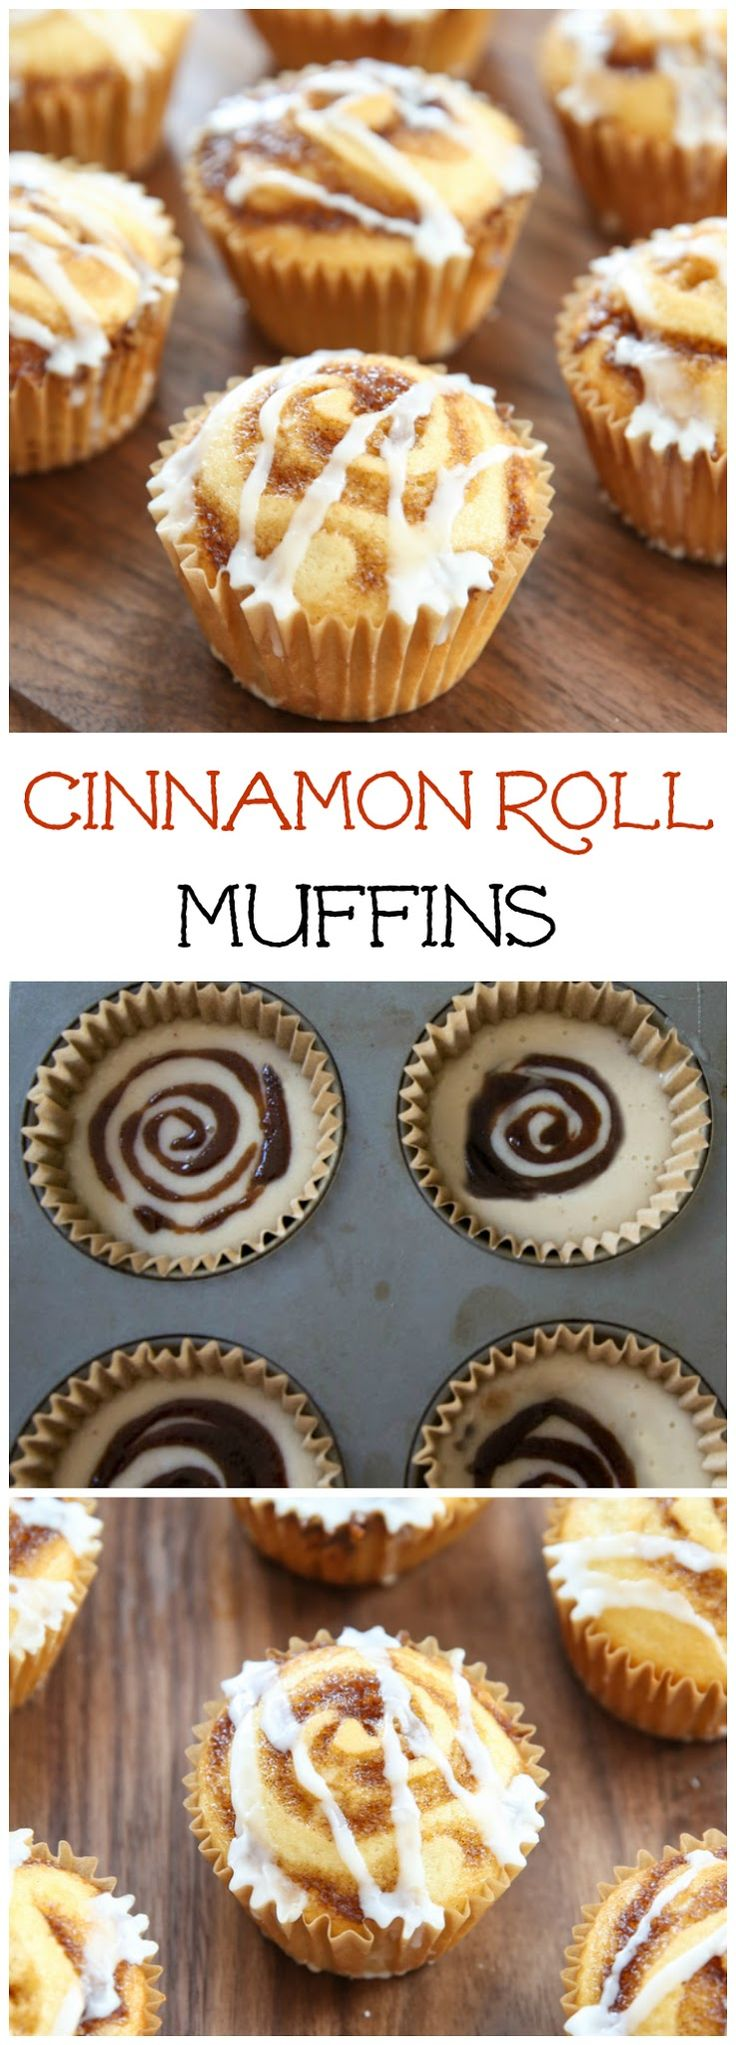 Cinnamon Roll Muffins. These adorable brunch muffins have swirls of cinnamon sugar and a drizzle of vanilla glaze. A great idea for Easter!